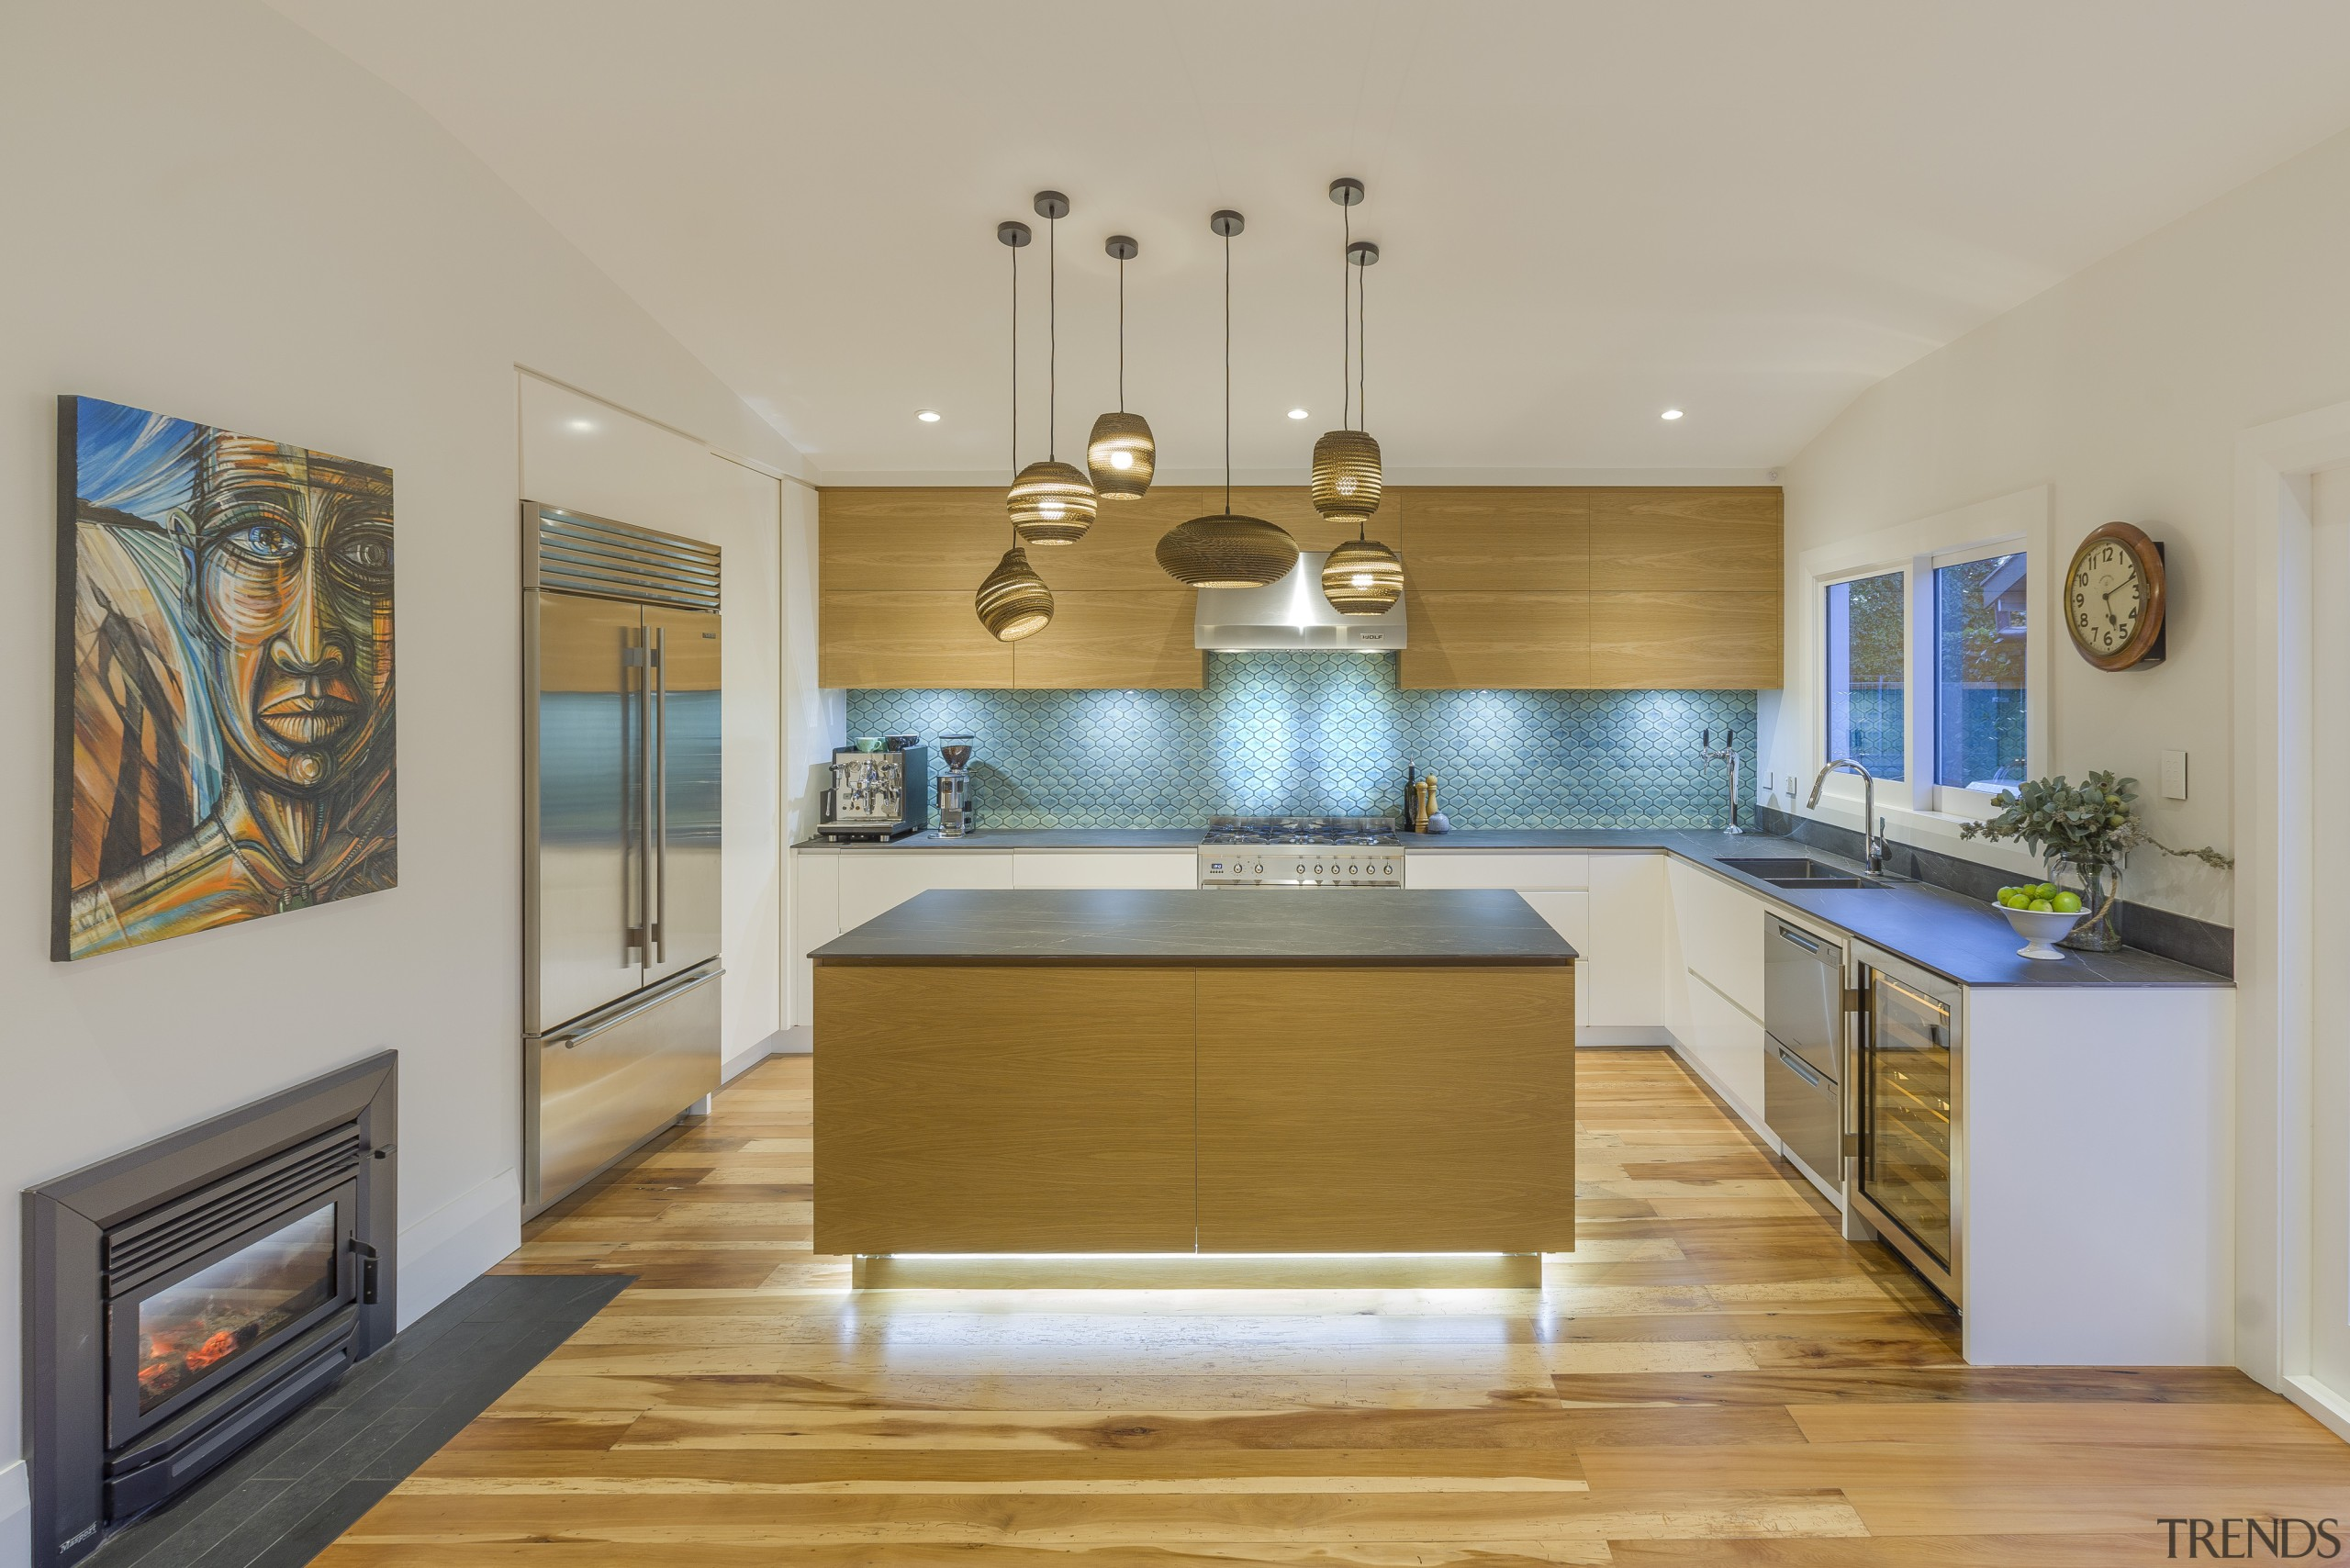 The iridescent splashback draws the eye in this architecture, building, cabinetry, ceiling, countertop, dining room, estate, floor, flooring, furniture, hardwood, home, house, interior design, kitchen, light fixture, property, real estate, room, wood, wood flooring, yellow, gray